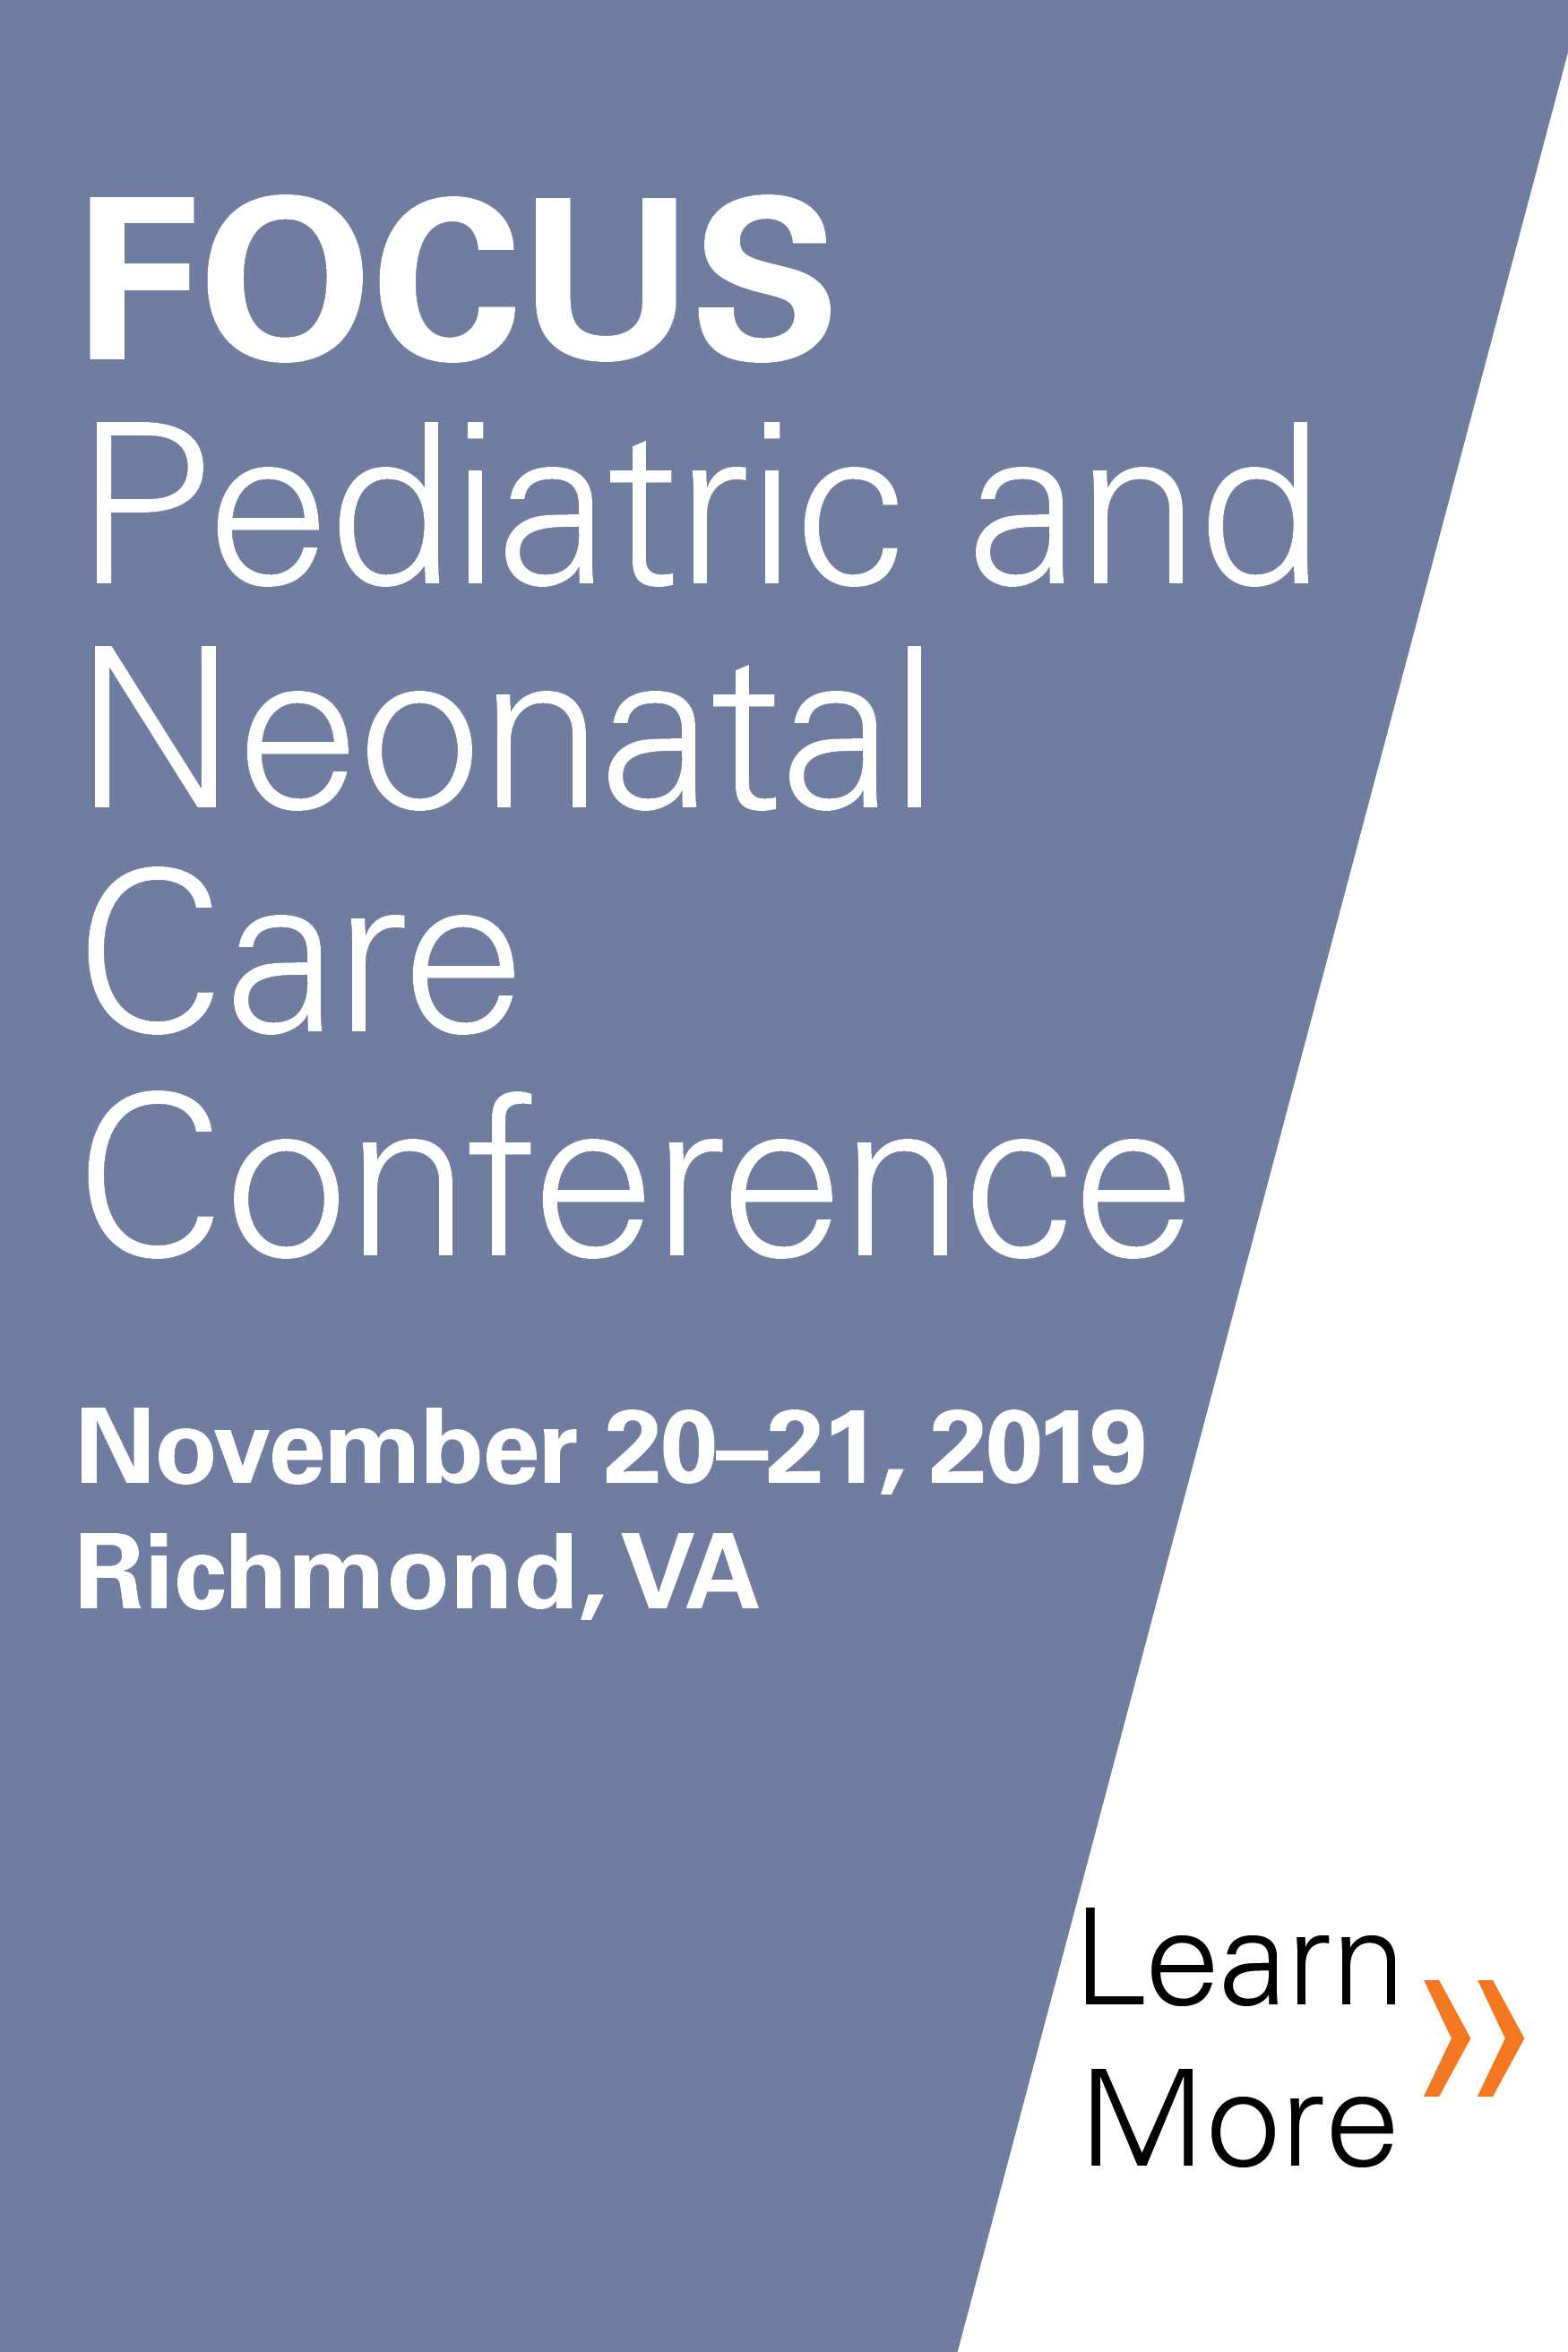 7th Annual FOCUS: Pediatric Pharmacology, and Pediatric and Neonatal Care Conference Banner